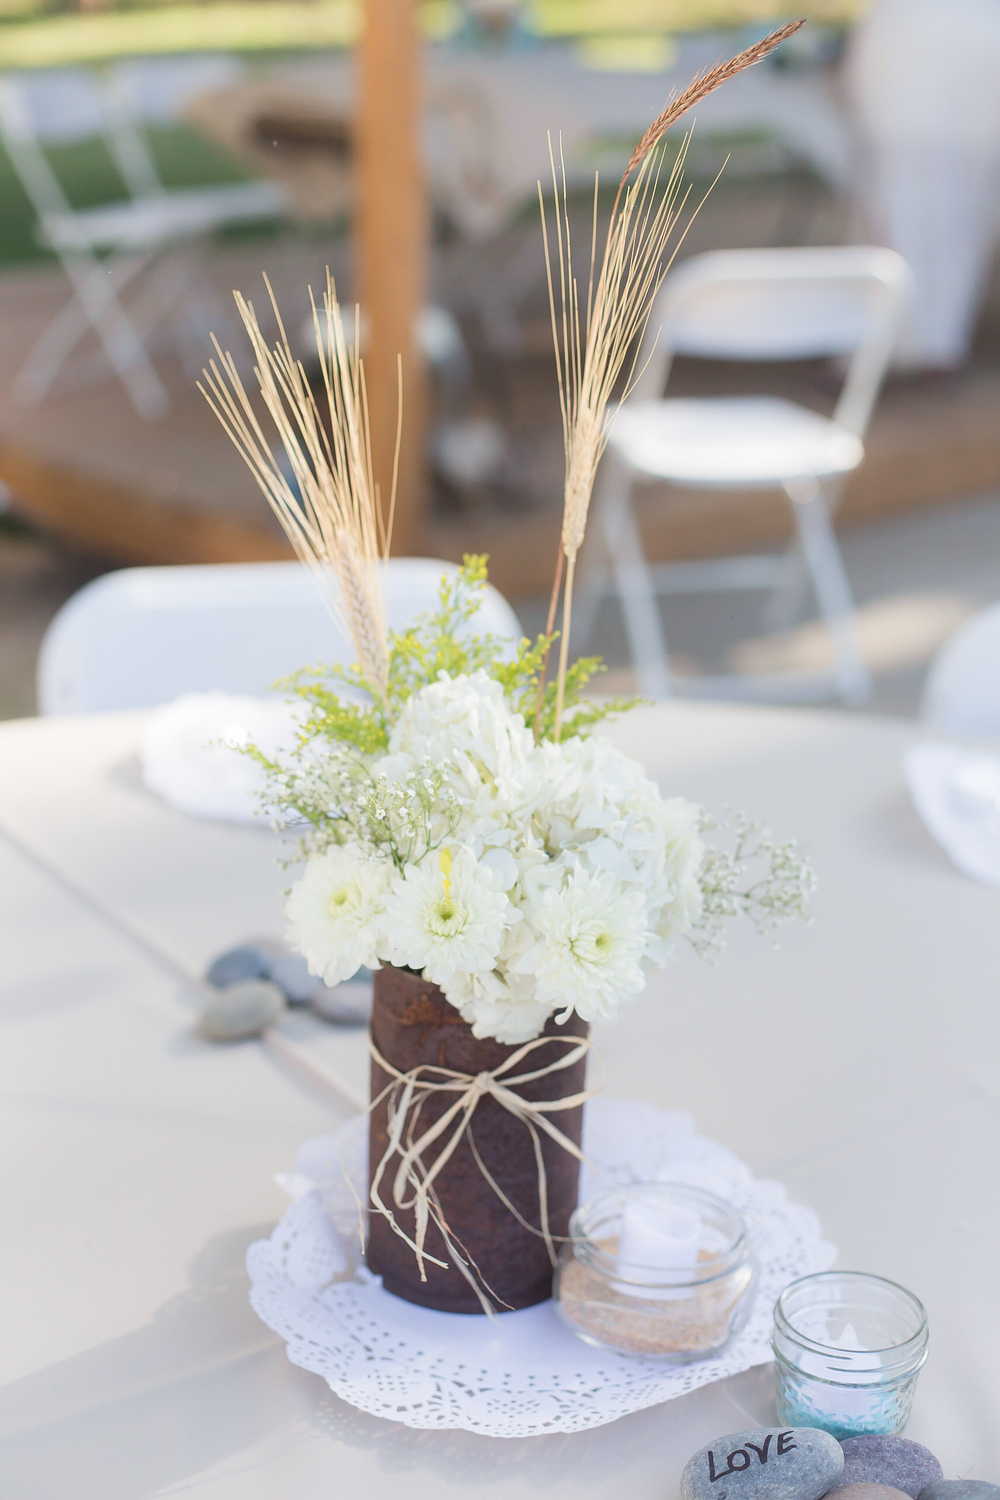 Image taken with a 50mm 1.4 lens | Image sample | Wedding table decor